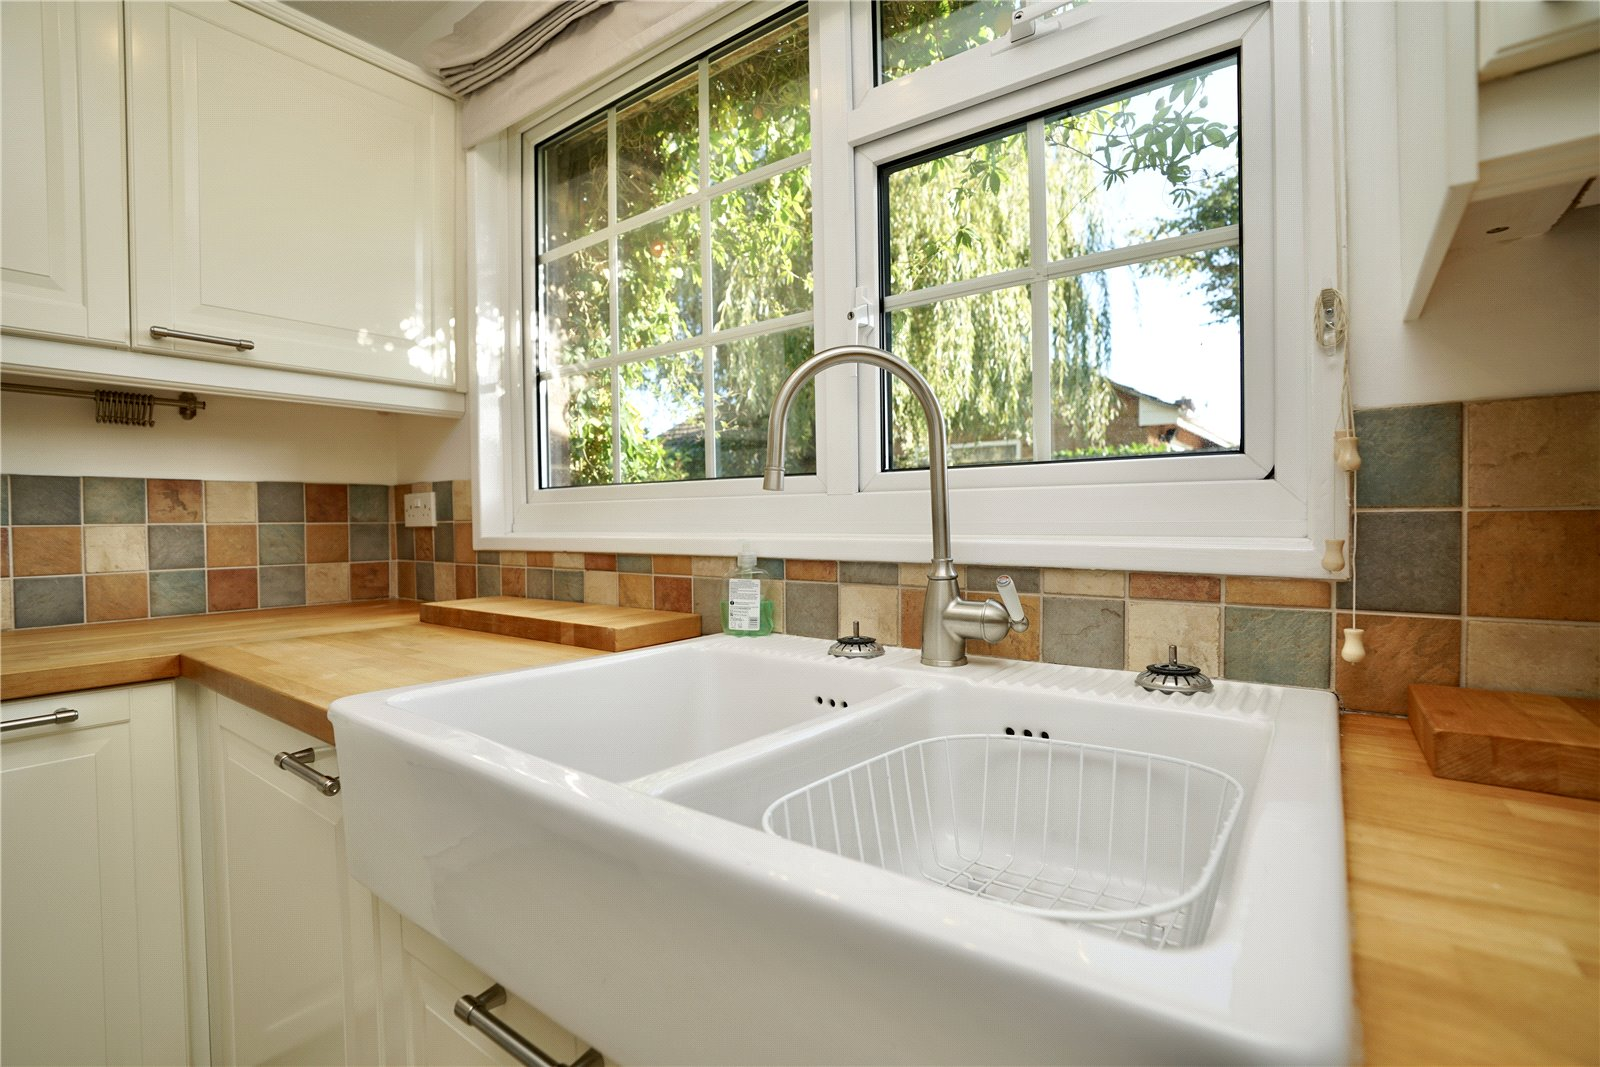 4 bed house for sale in All Hallows, Sandy 3